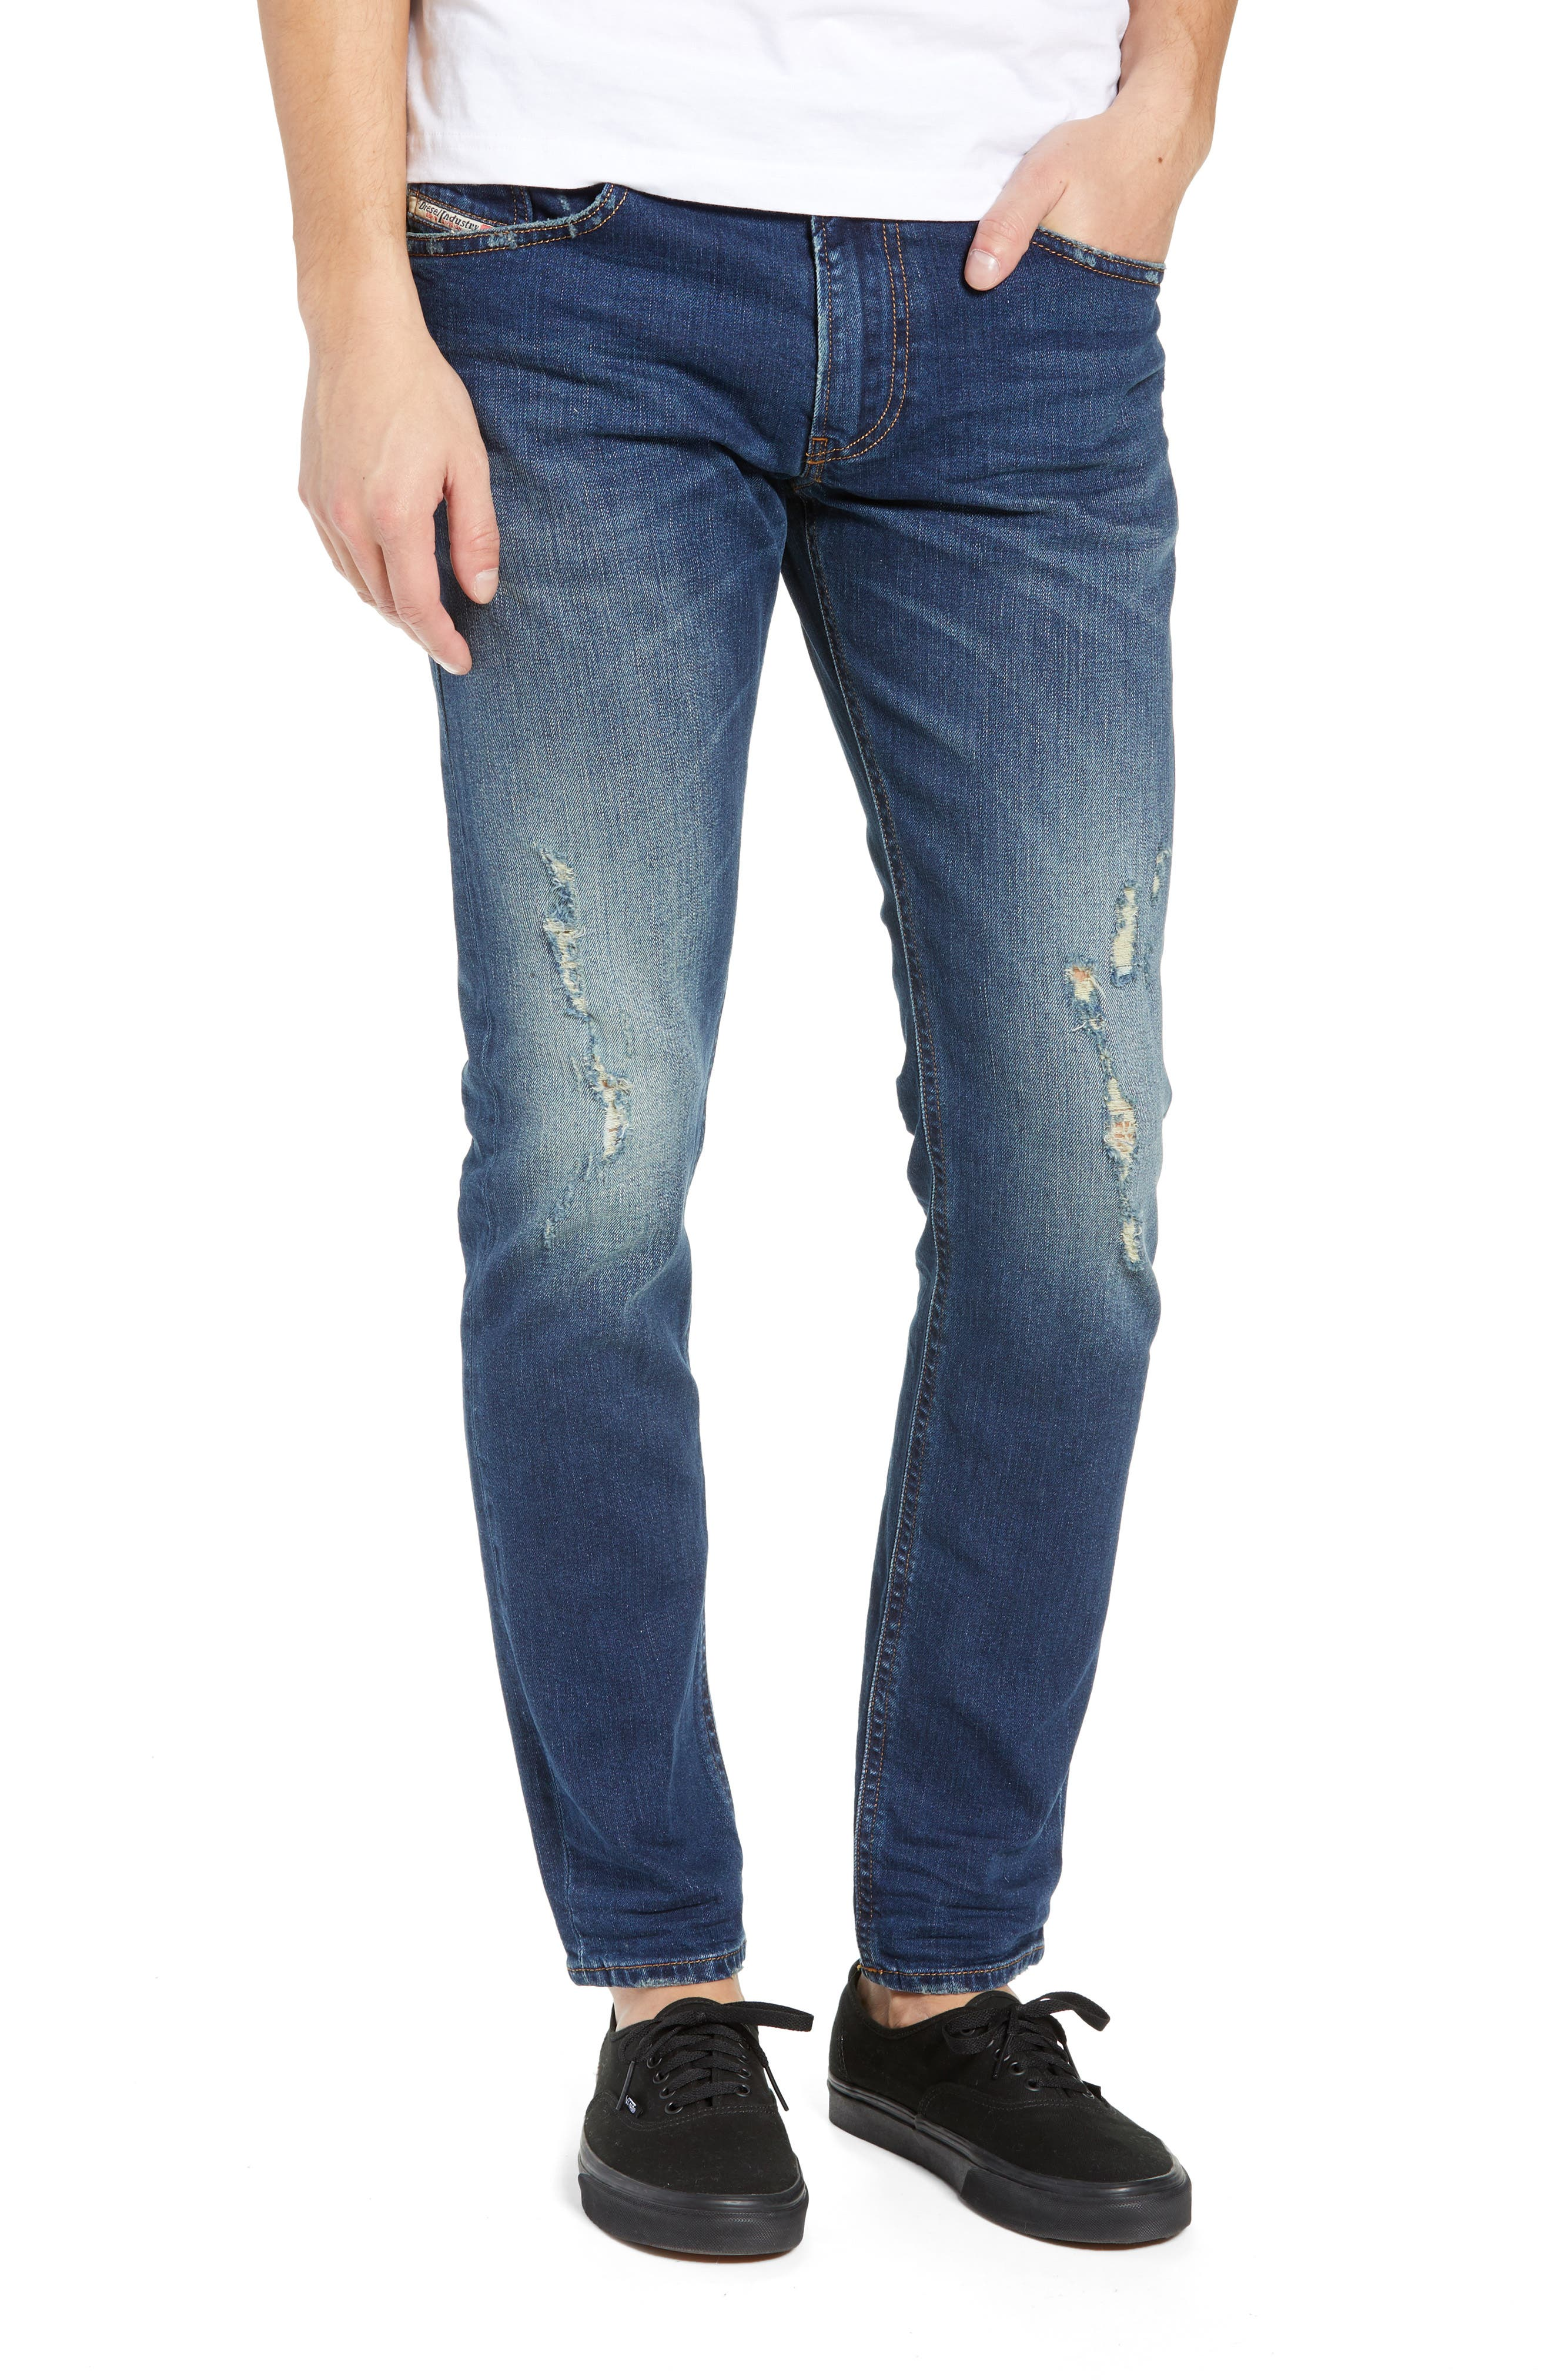 Thommer Slim Fit Jeans,                         Main,                         color, 084YY